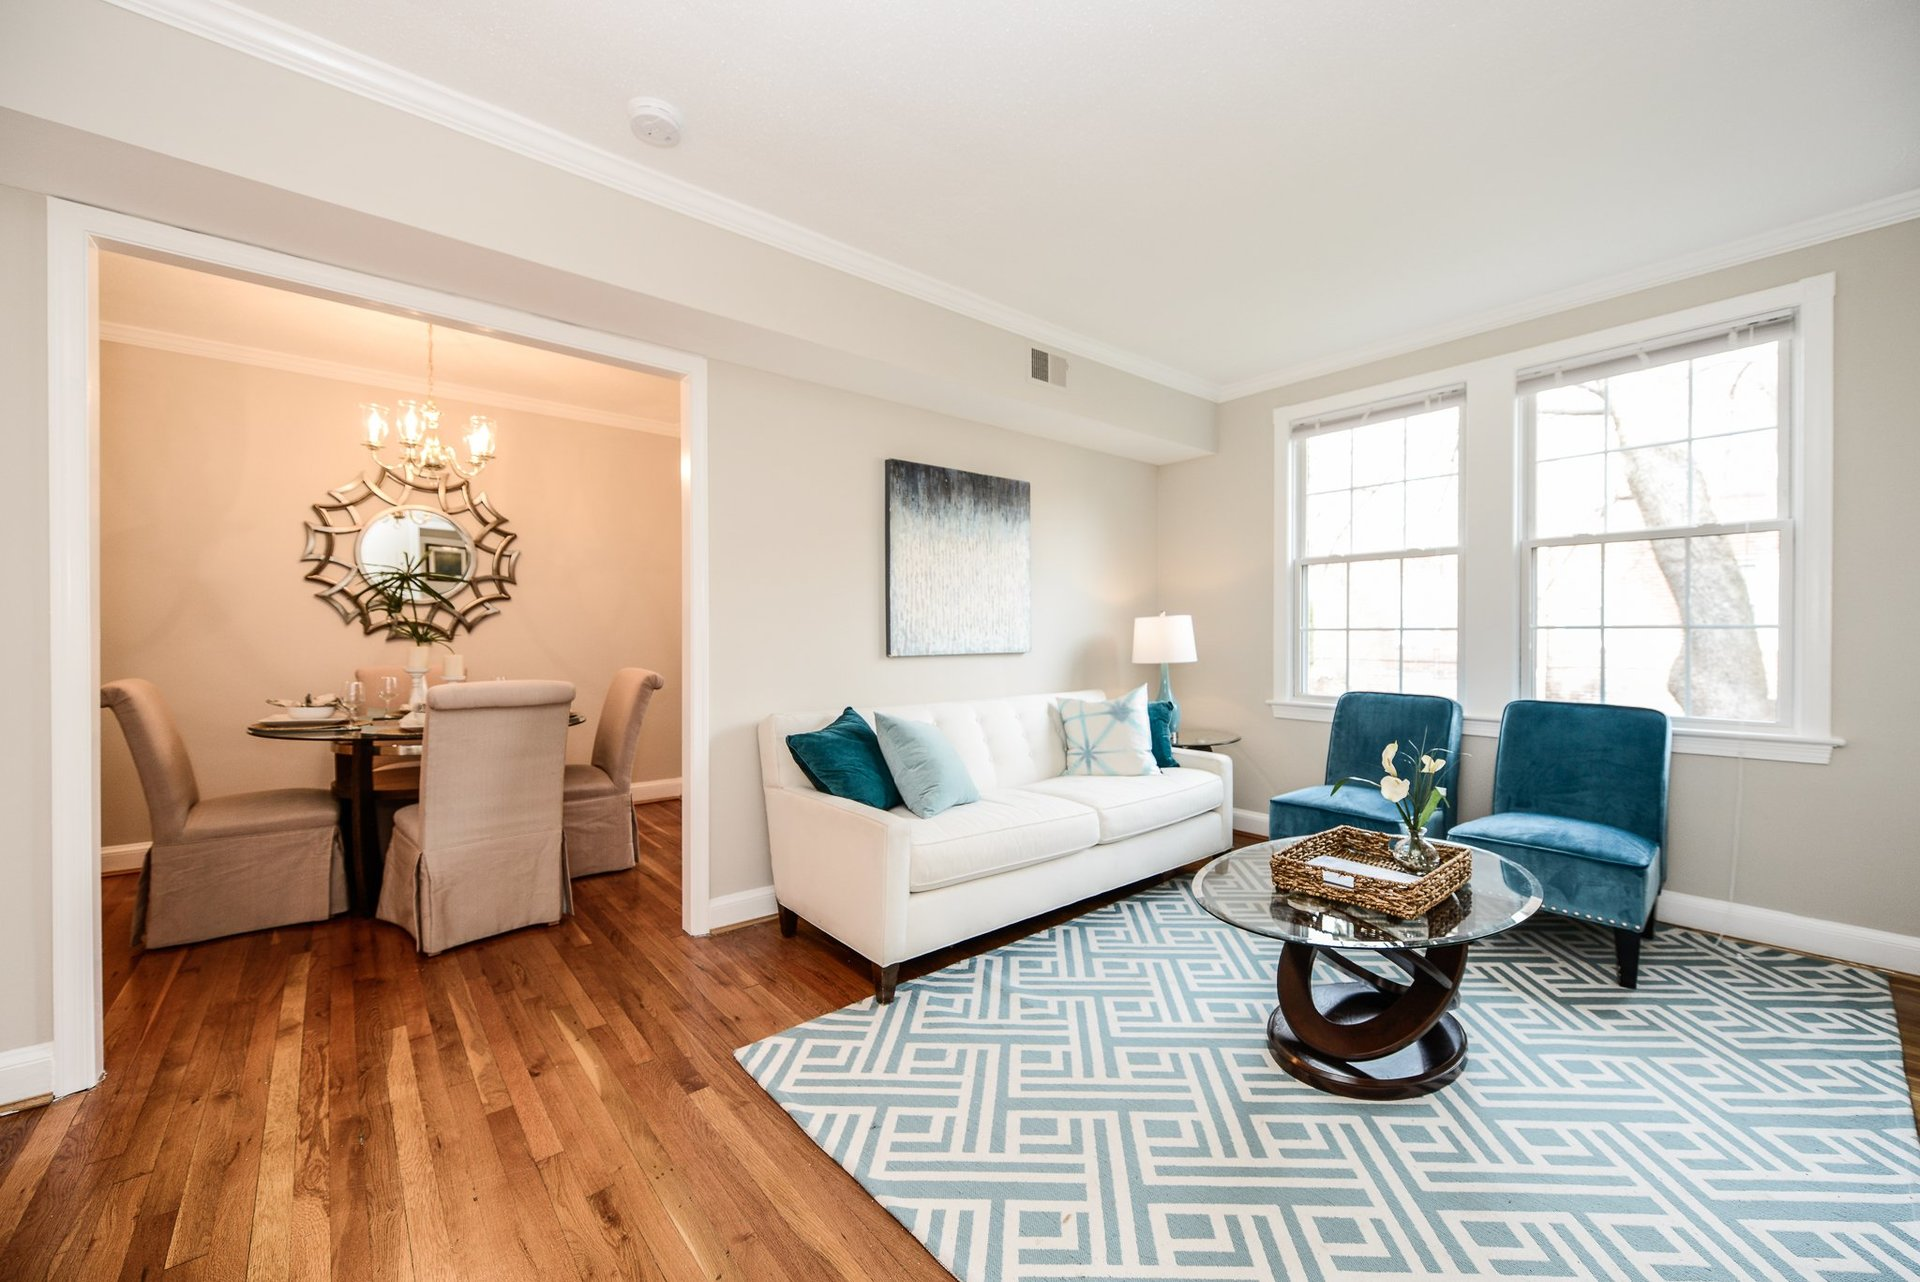 Apartment for rent near metro in alexandria va - One bedroom apartments alexandria va ...